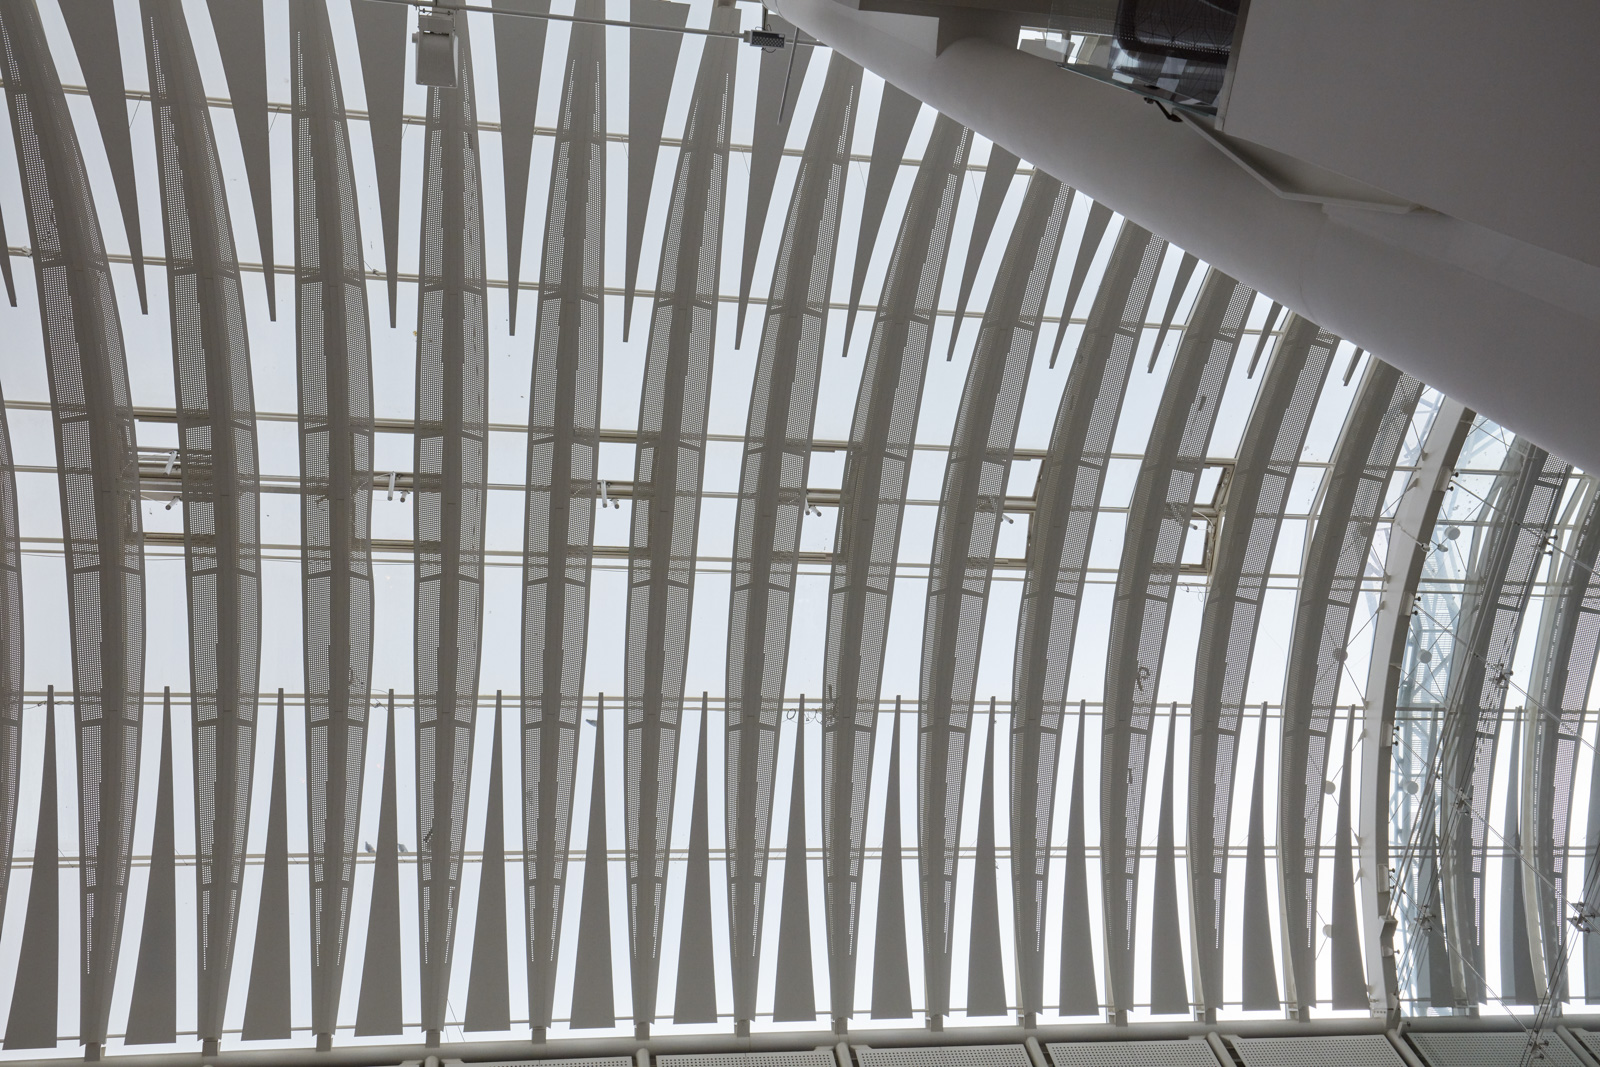 THE_MALL_ARCHITECTURE_063.jpg